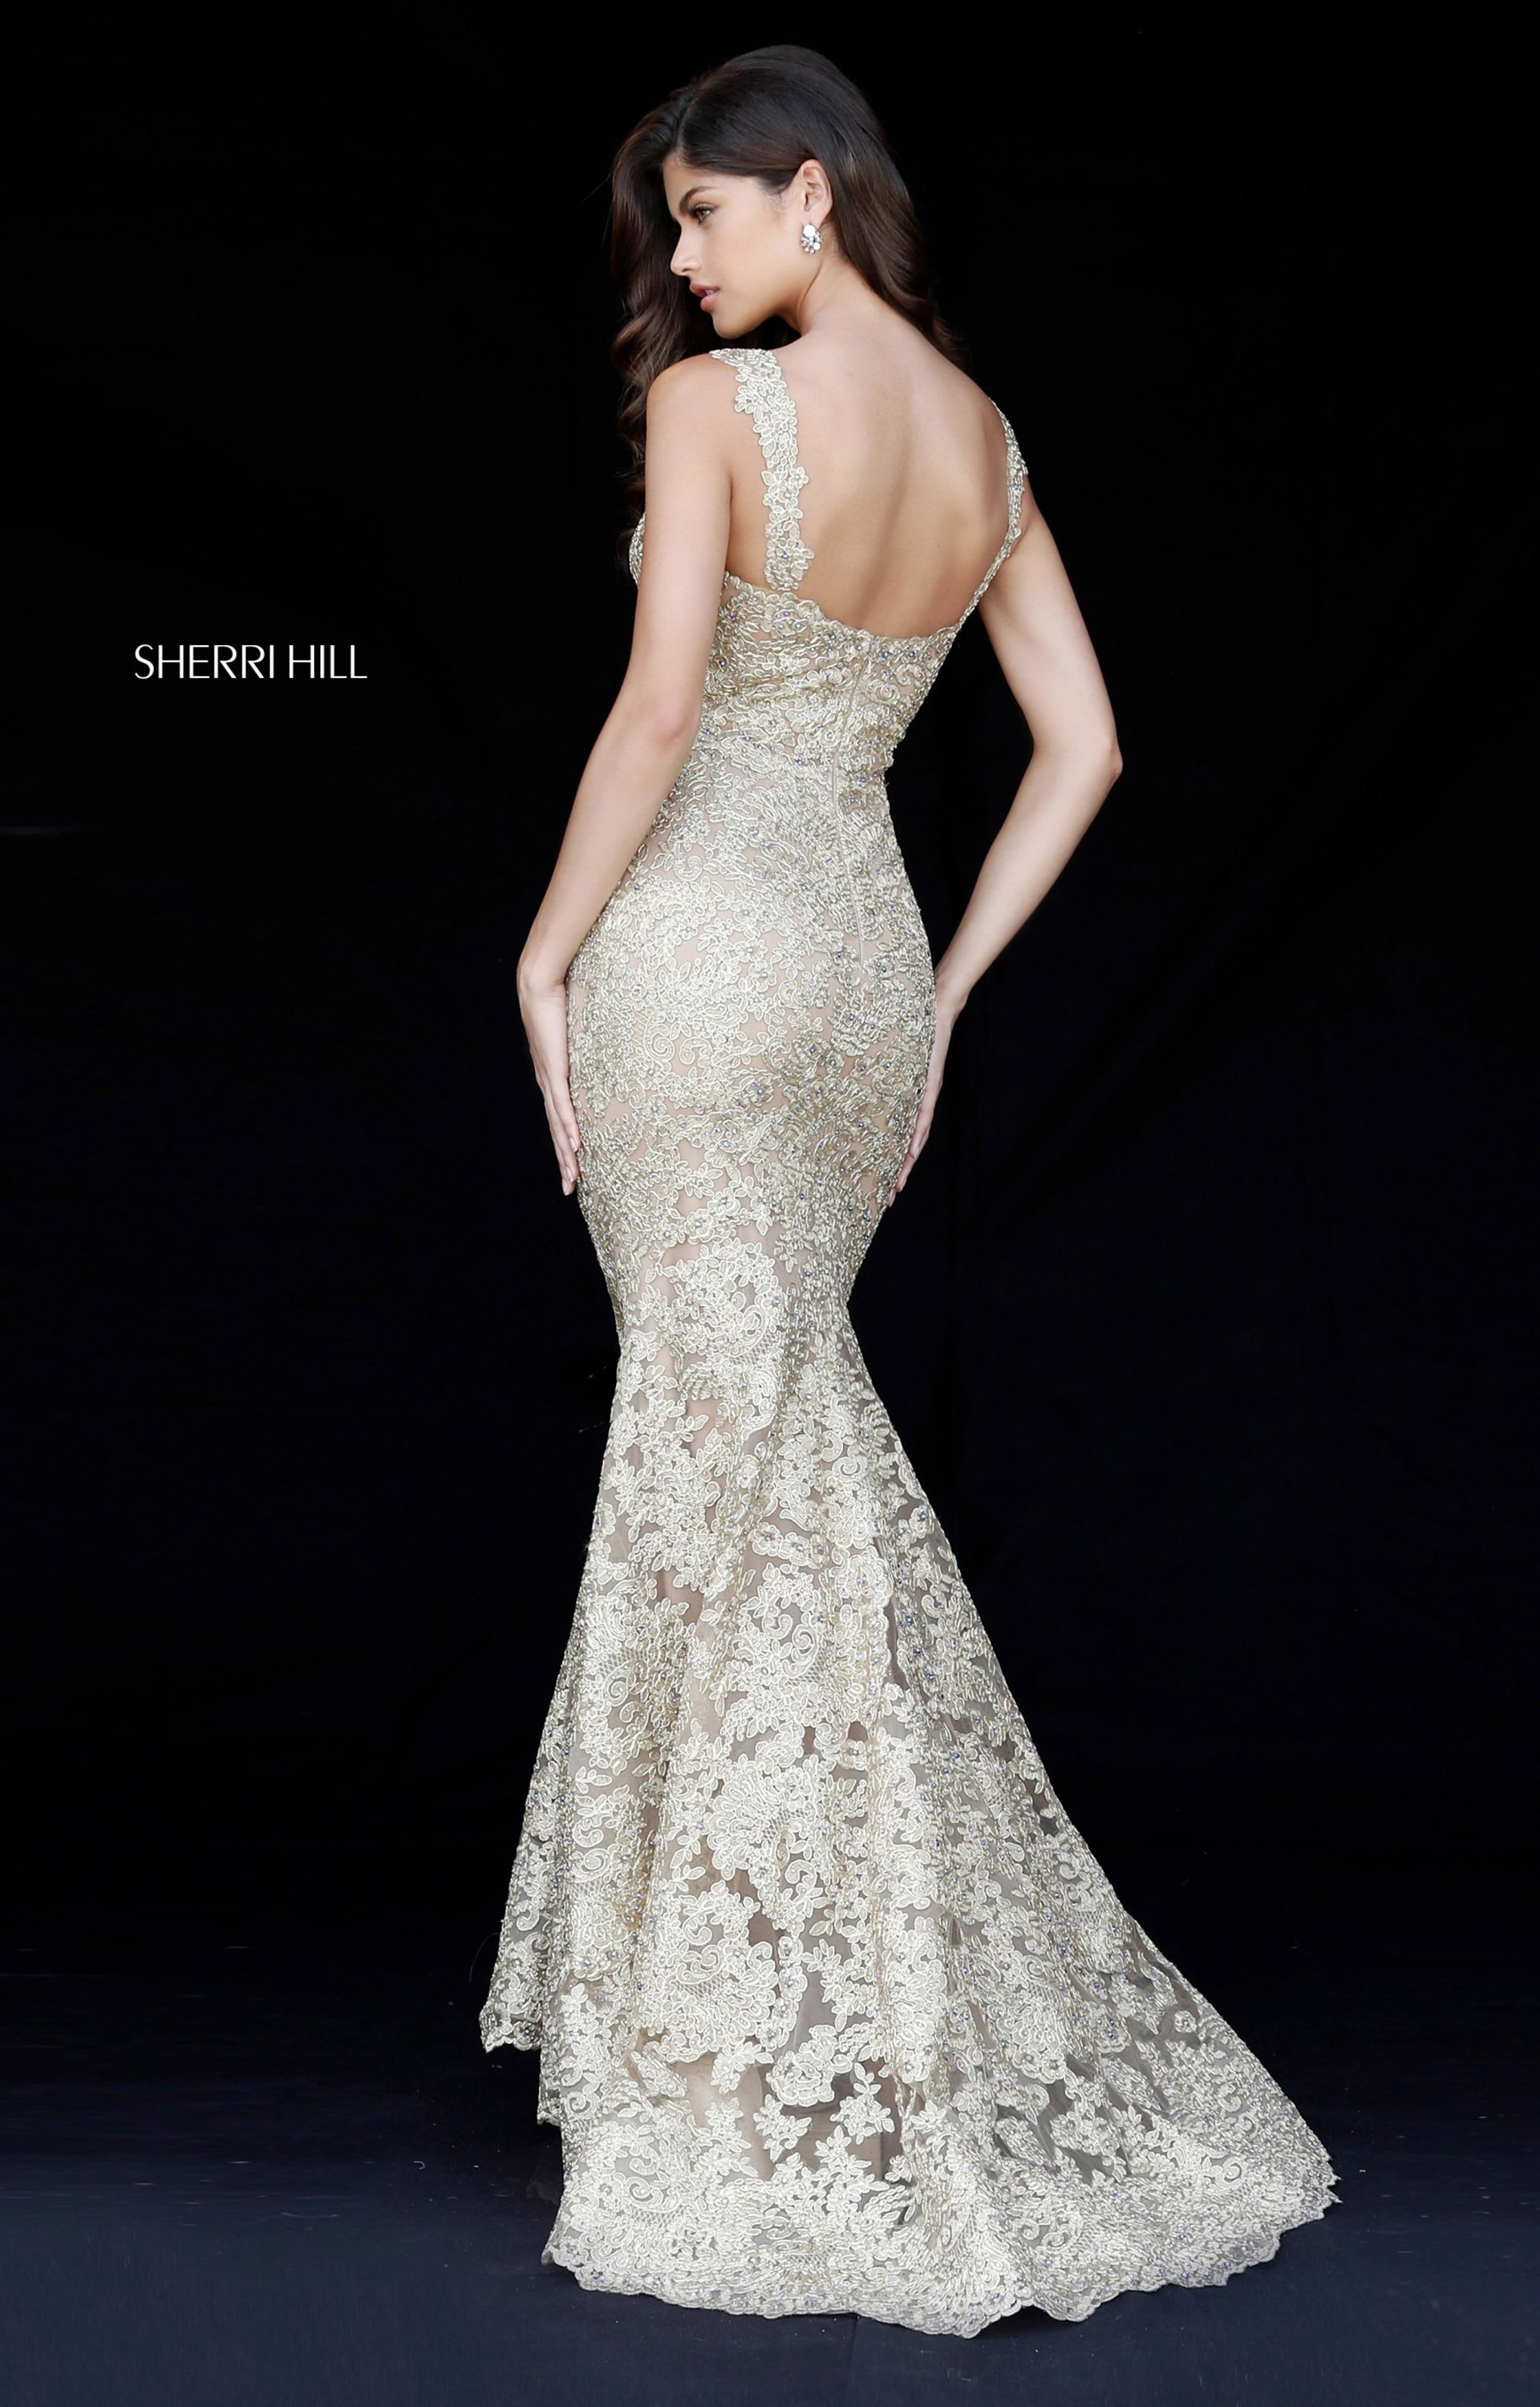 Sherri Hill 51571 Sweetheart Sleeveless Fitted Lace Prom